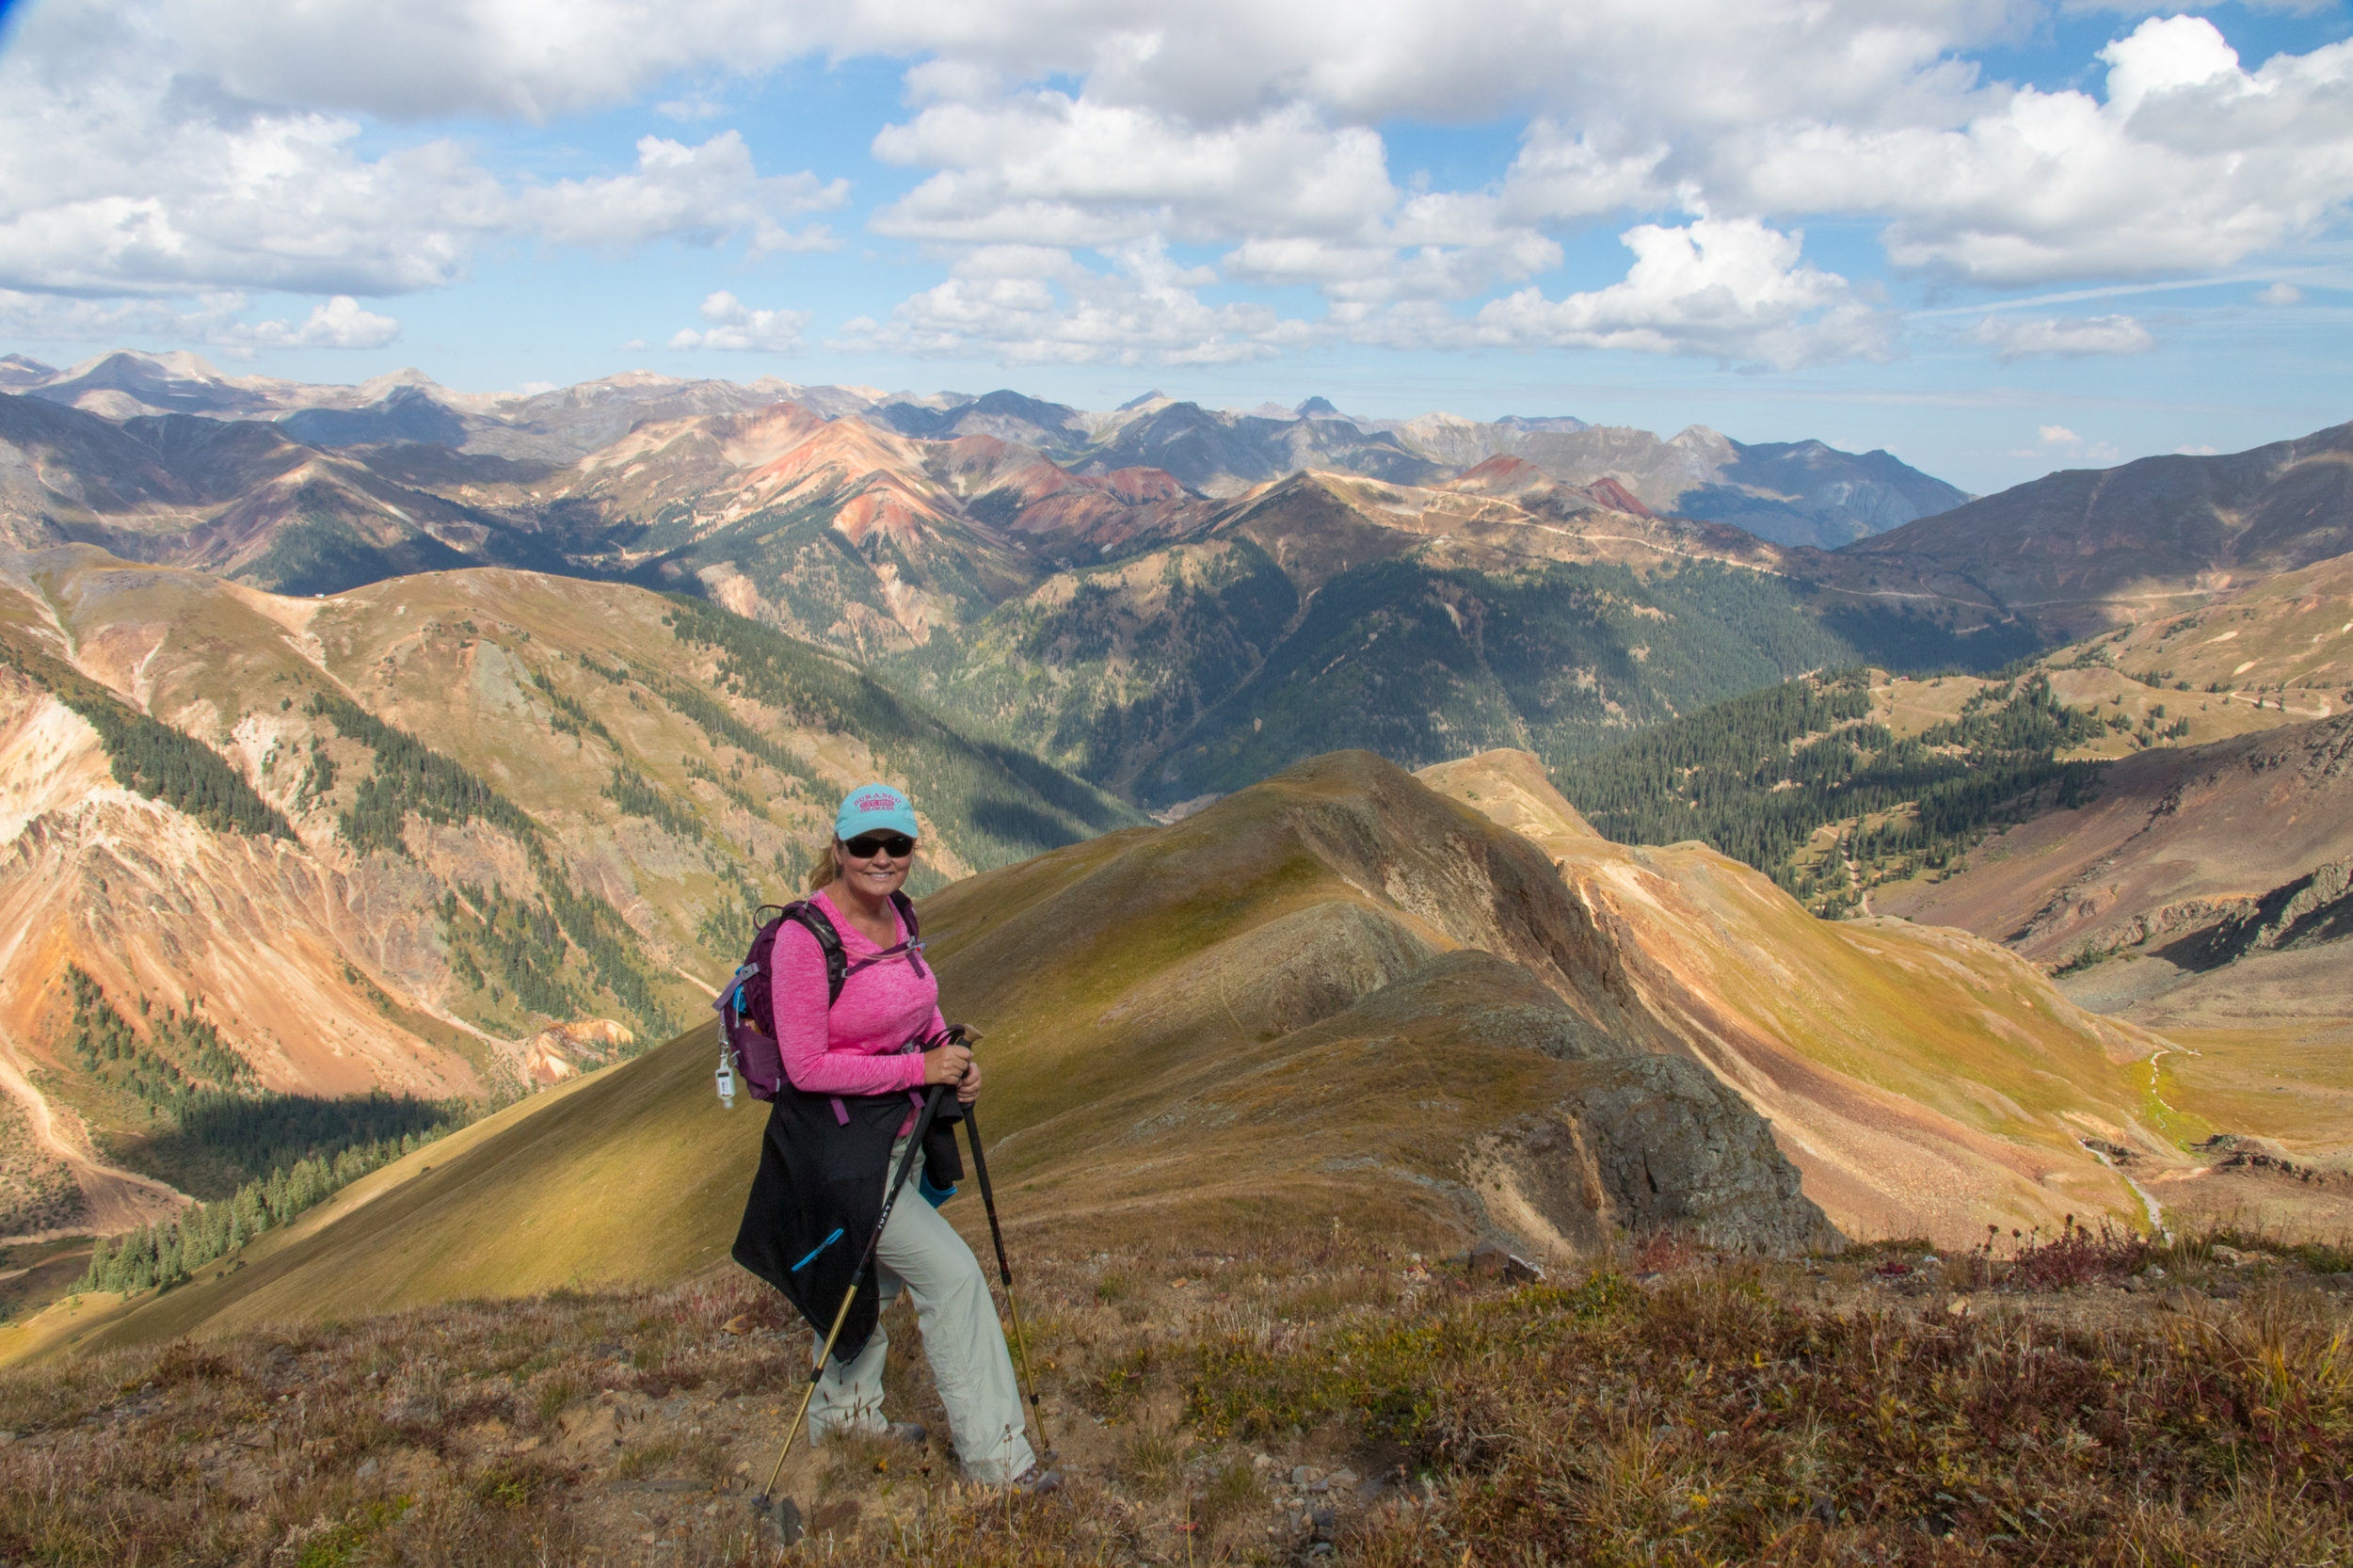 Lisa Vajda on route to Tower Mountain, Image # 7493